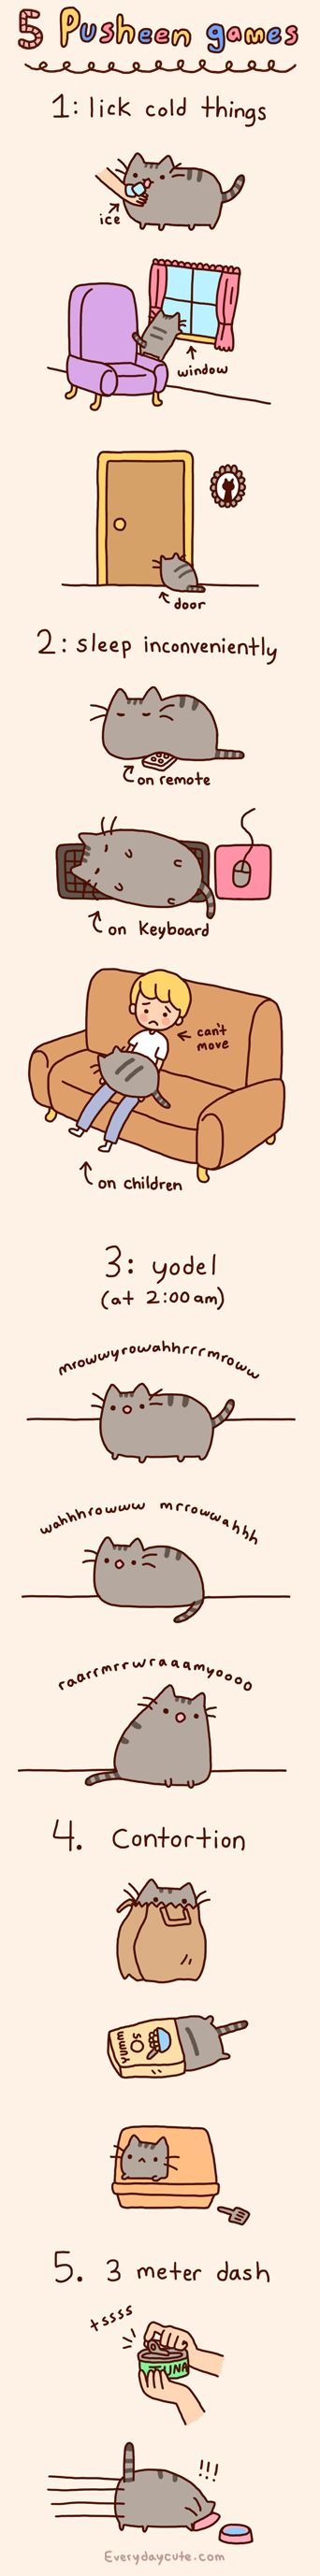 Pusheen The Cat: 5 Pusheen Games